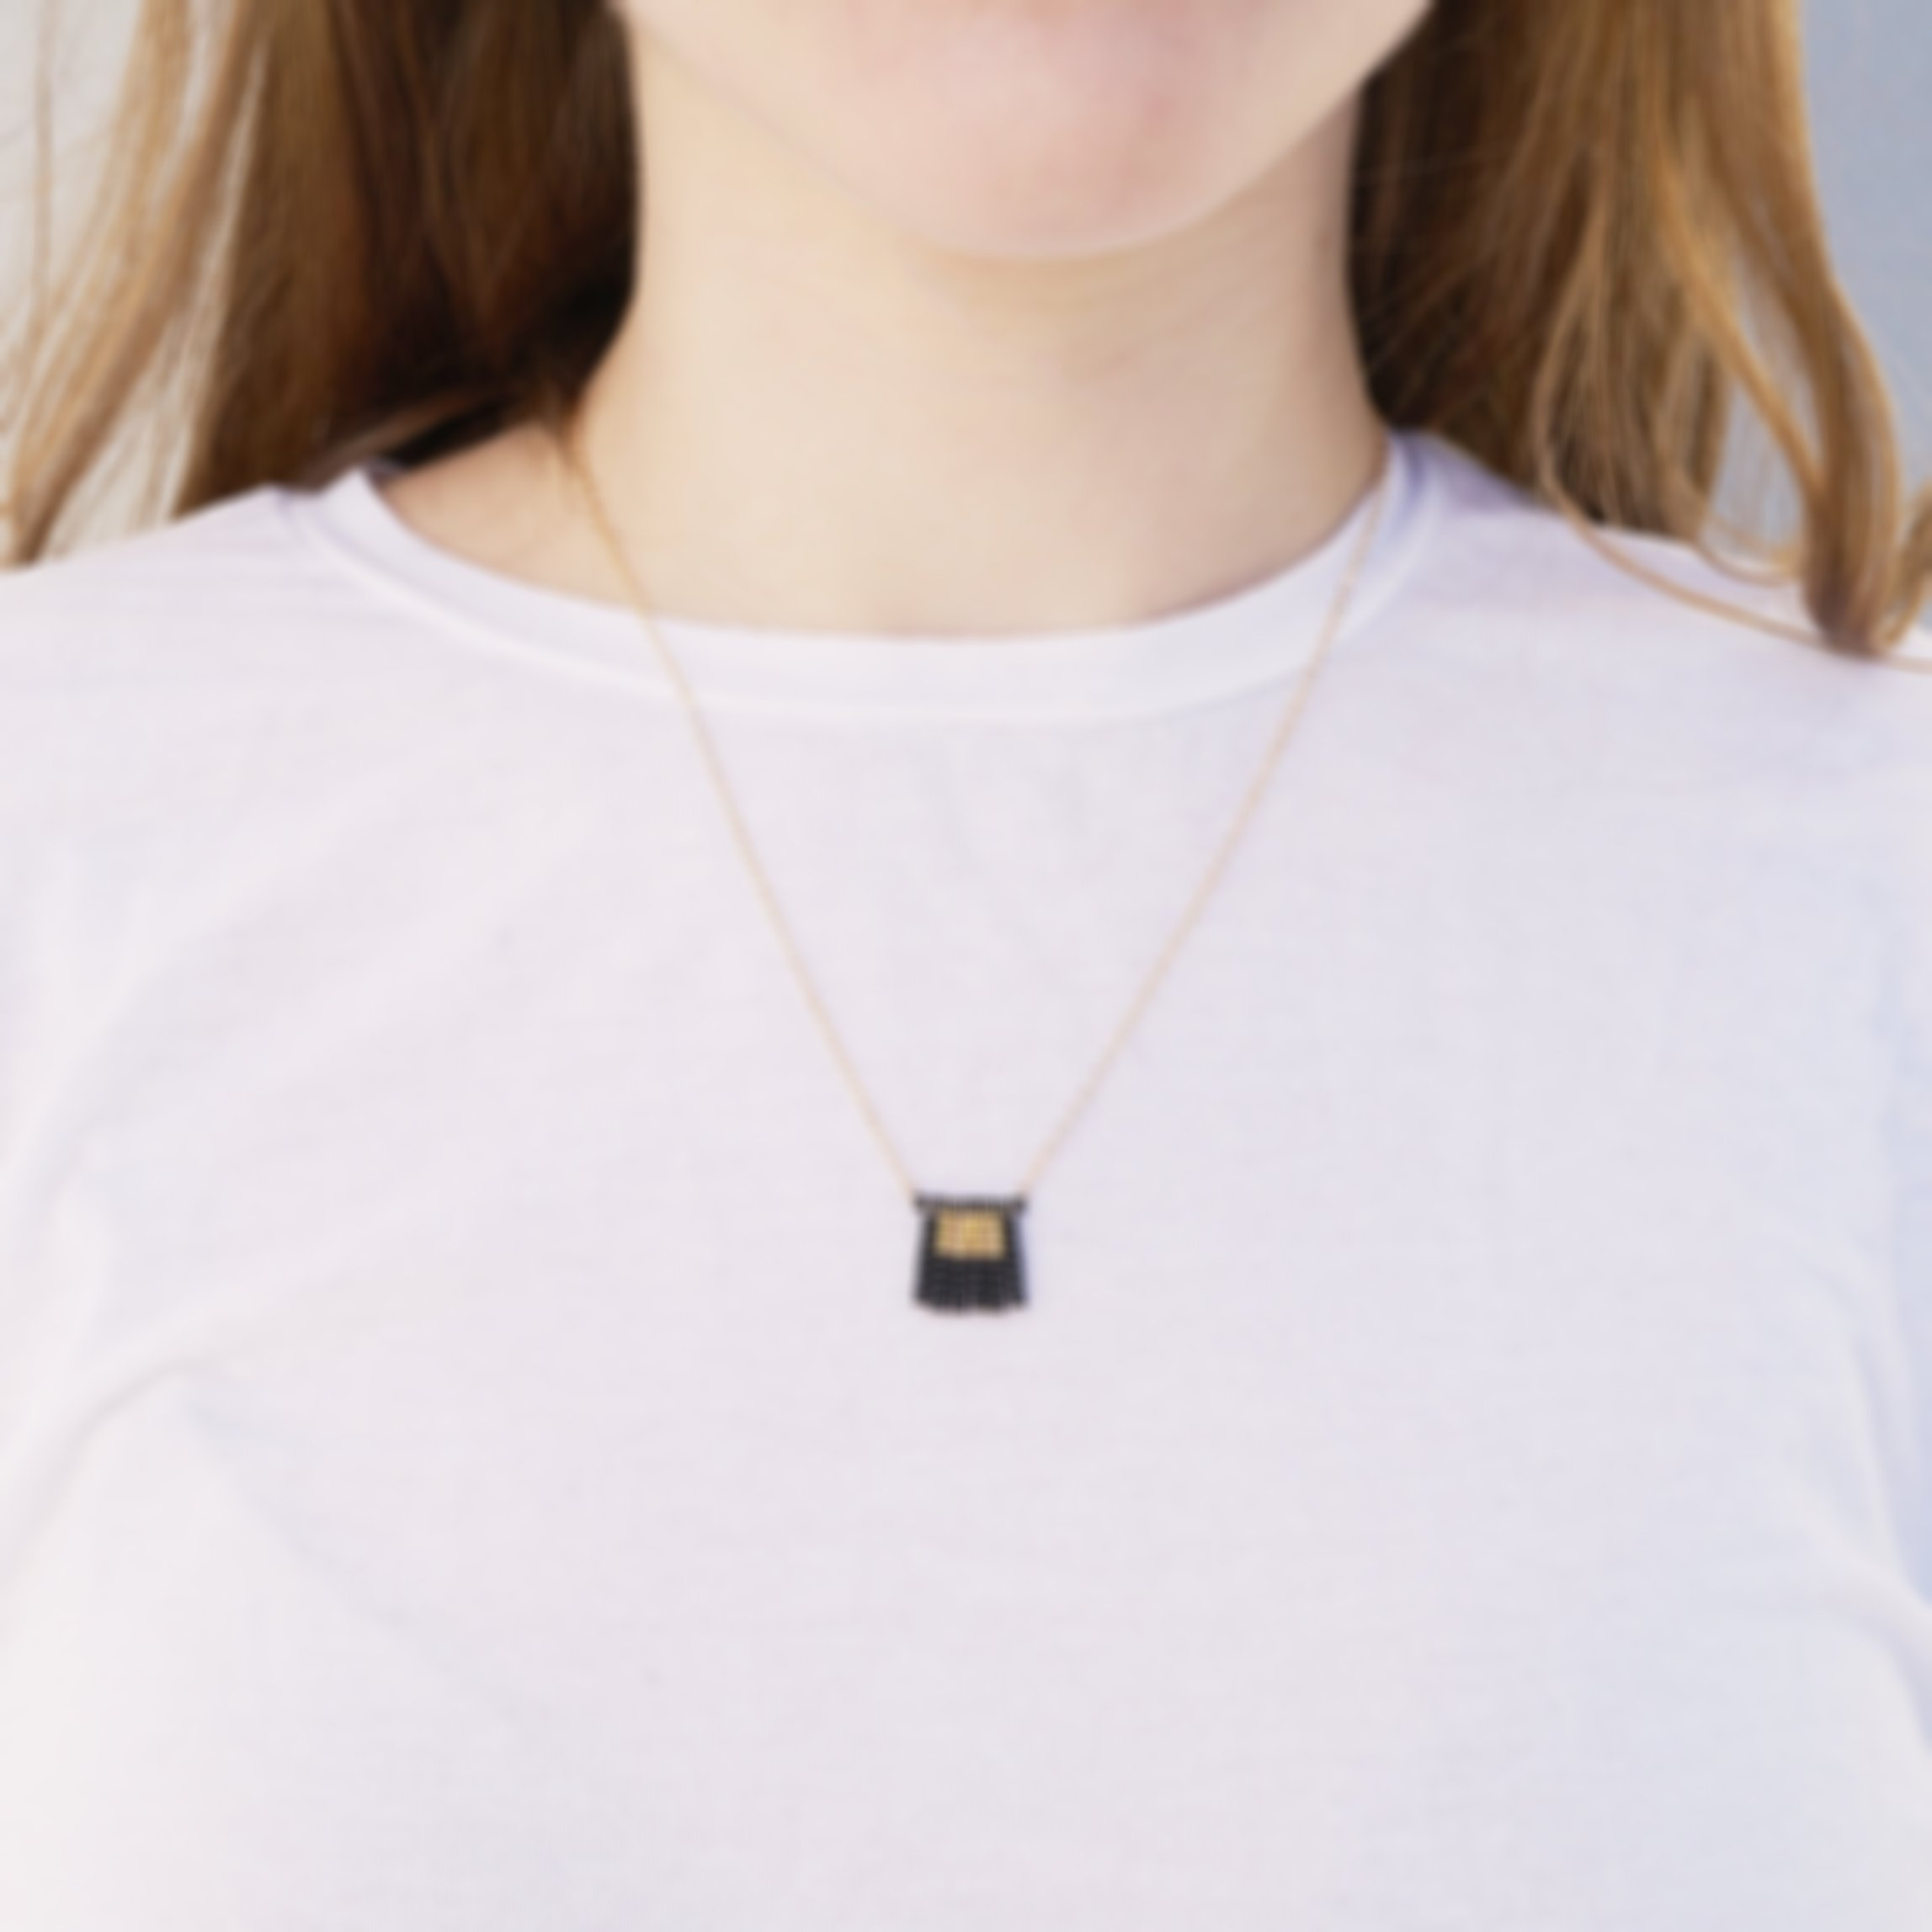 Nzuri Tassel Block Necklace